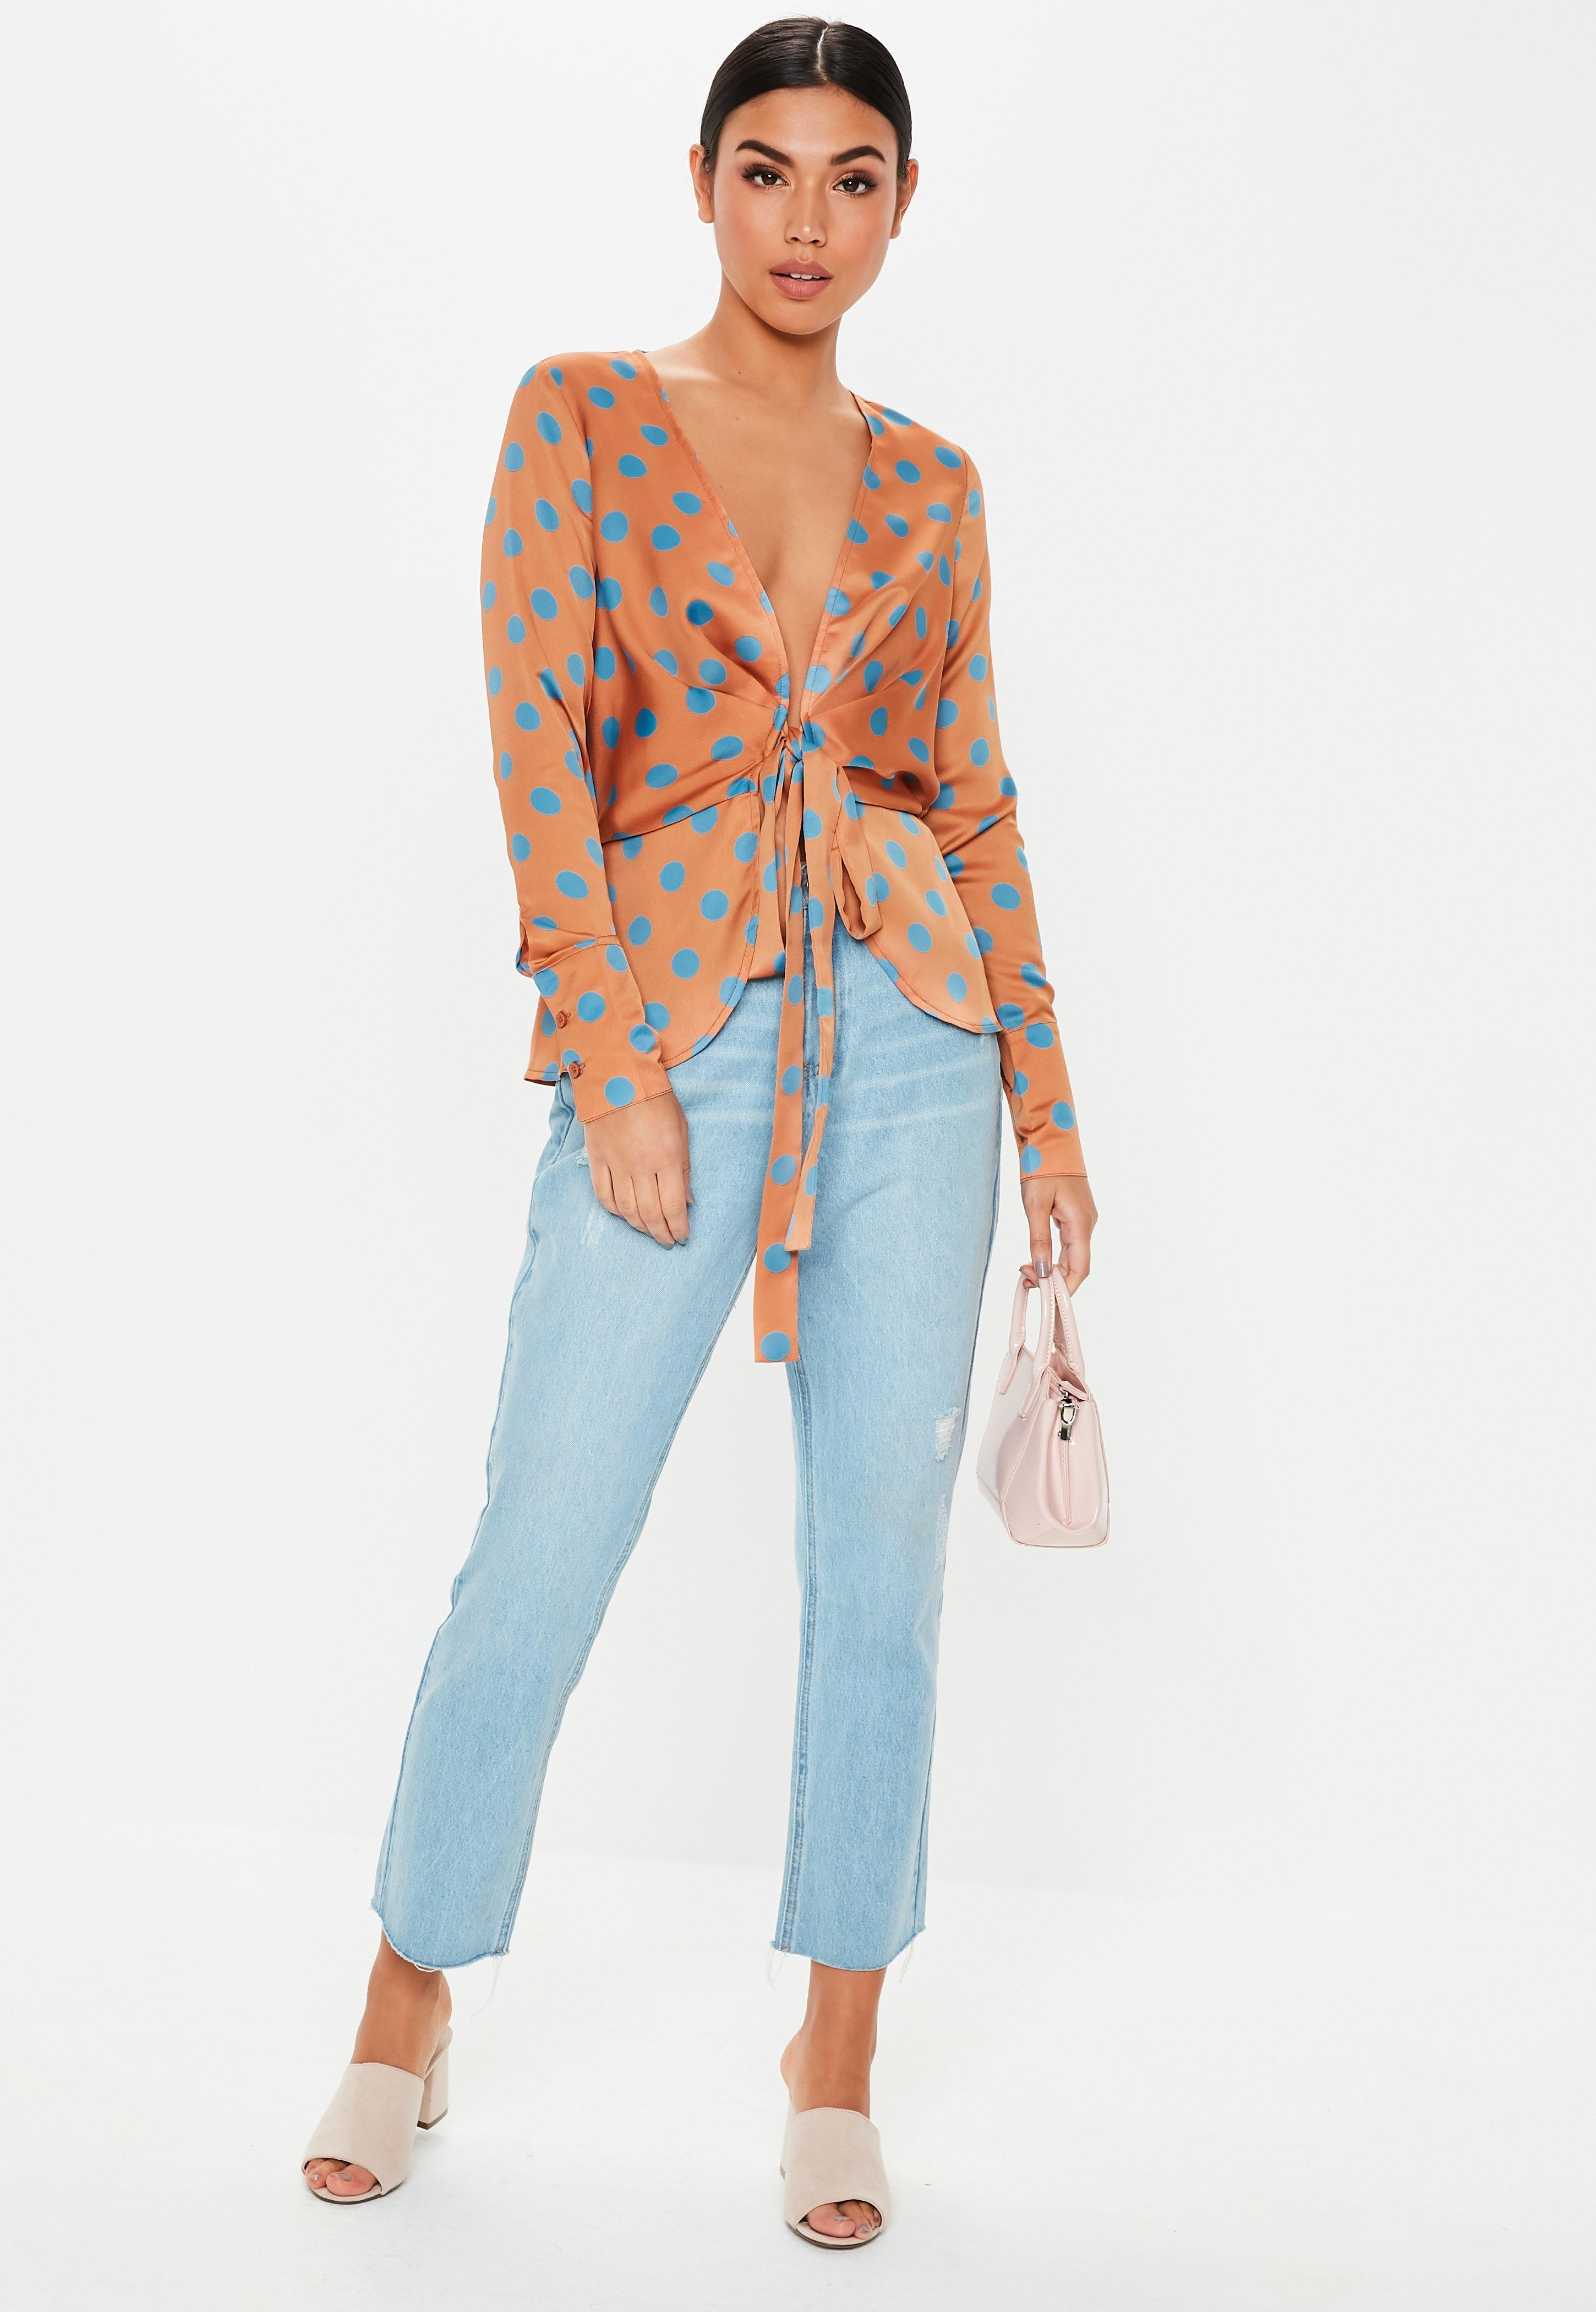 b9e9055ce940e9 Lyst - Missguided Rust Polka Dot Tie Front Plunge Blouse in Orange